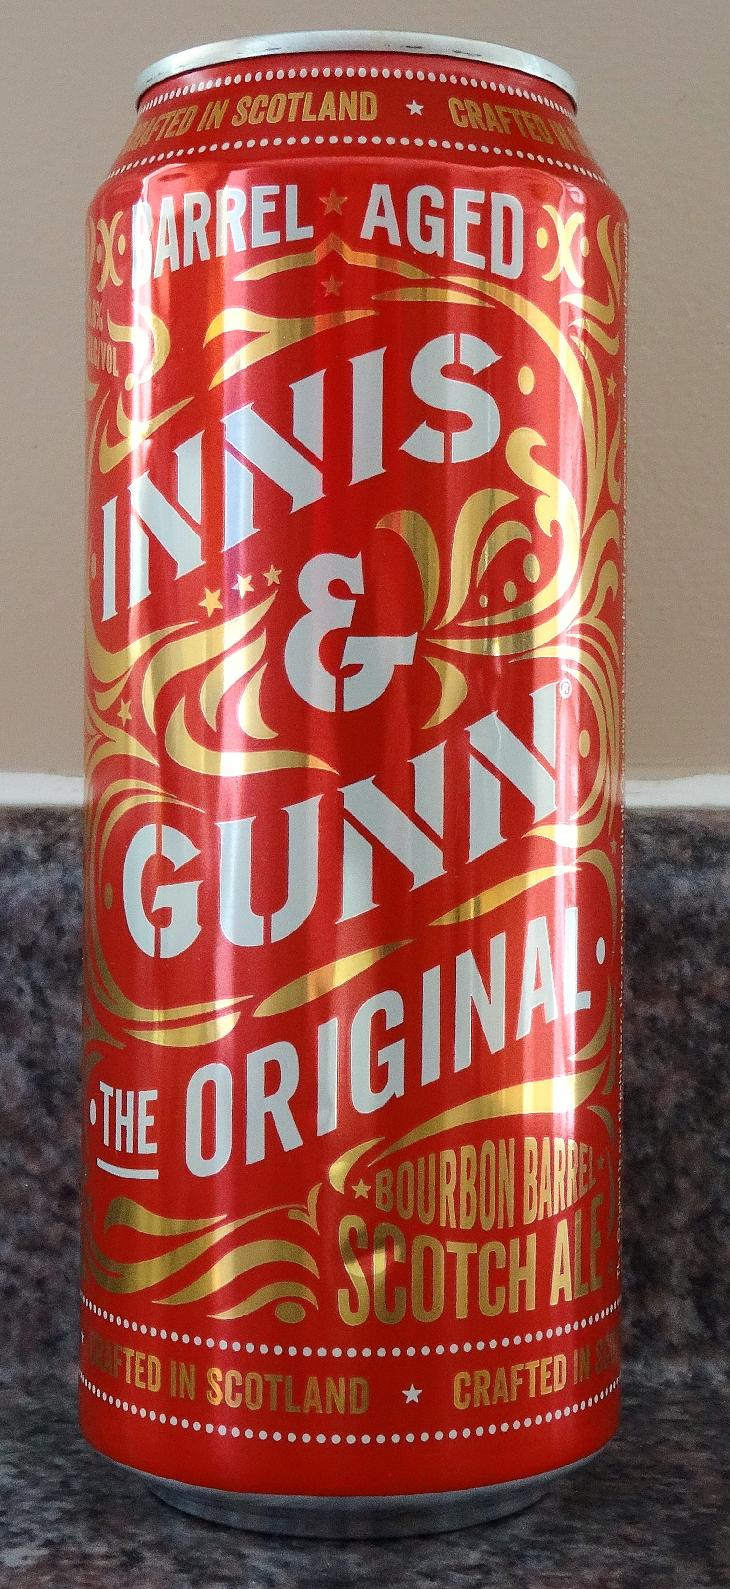 Photo of an Innis and Gunn beer can. This is the original Innis and Gunn beer. The can says that the beer is Bourbon Barrel Scotch Ale.